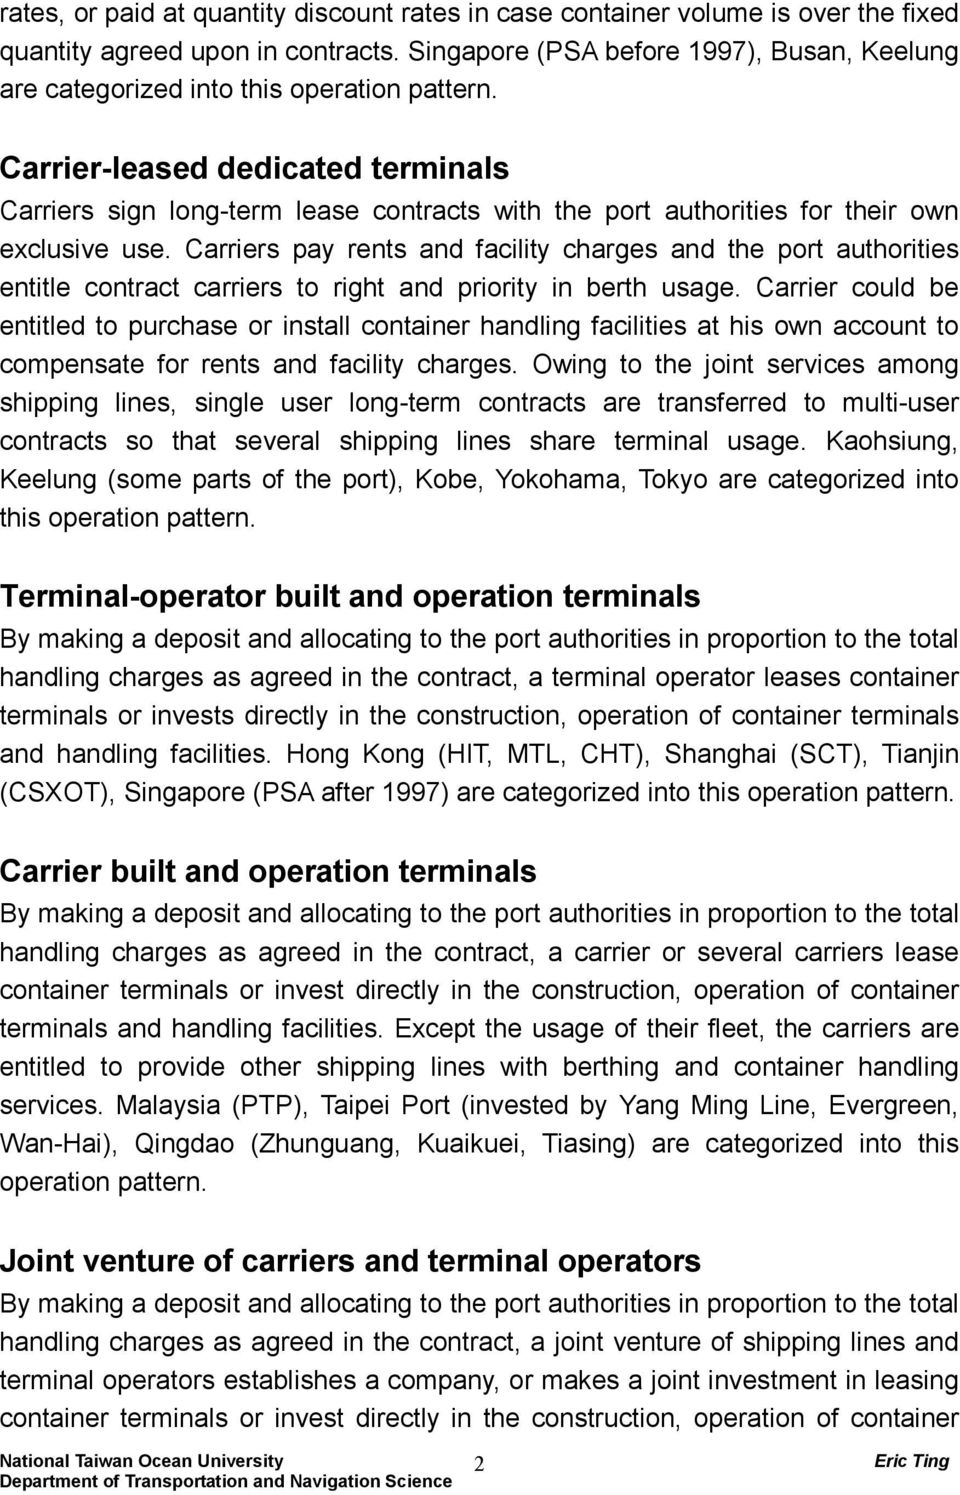 Carrier-leased dedicated terminals Carriers sign long-term lease contracts with the port authorities for their own exclusive use.